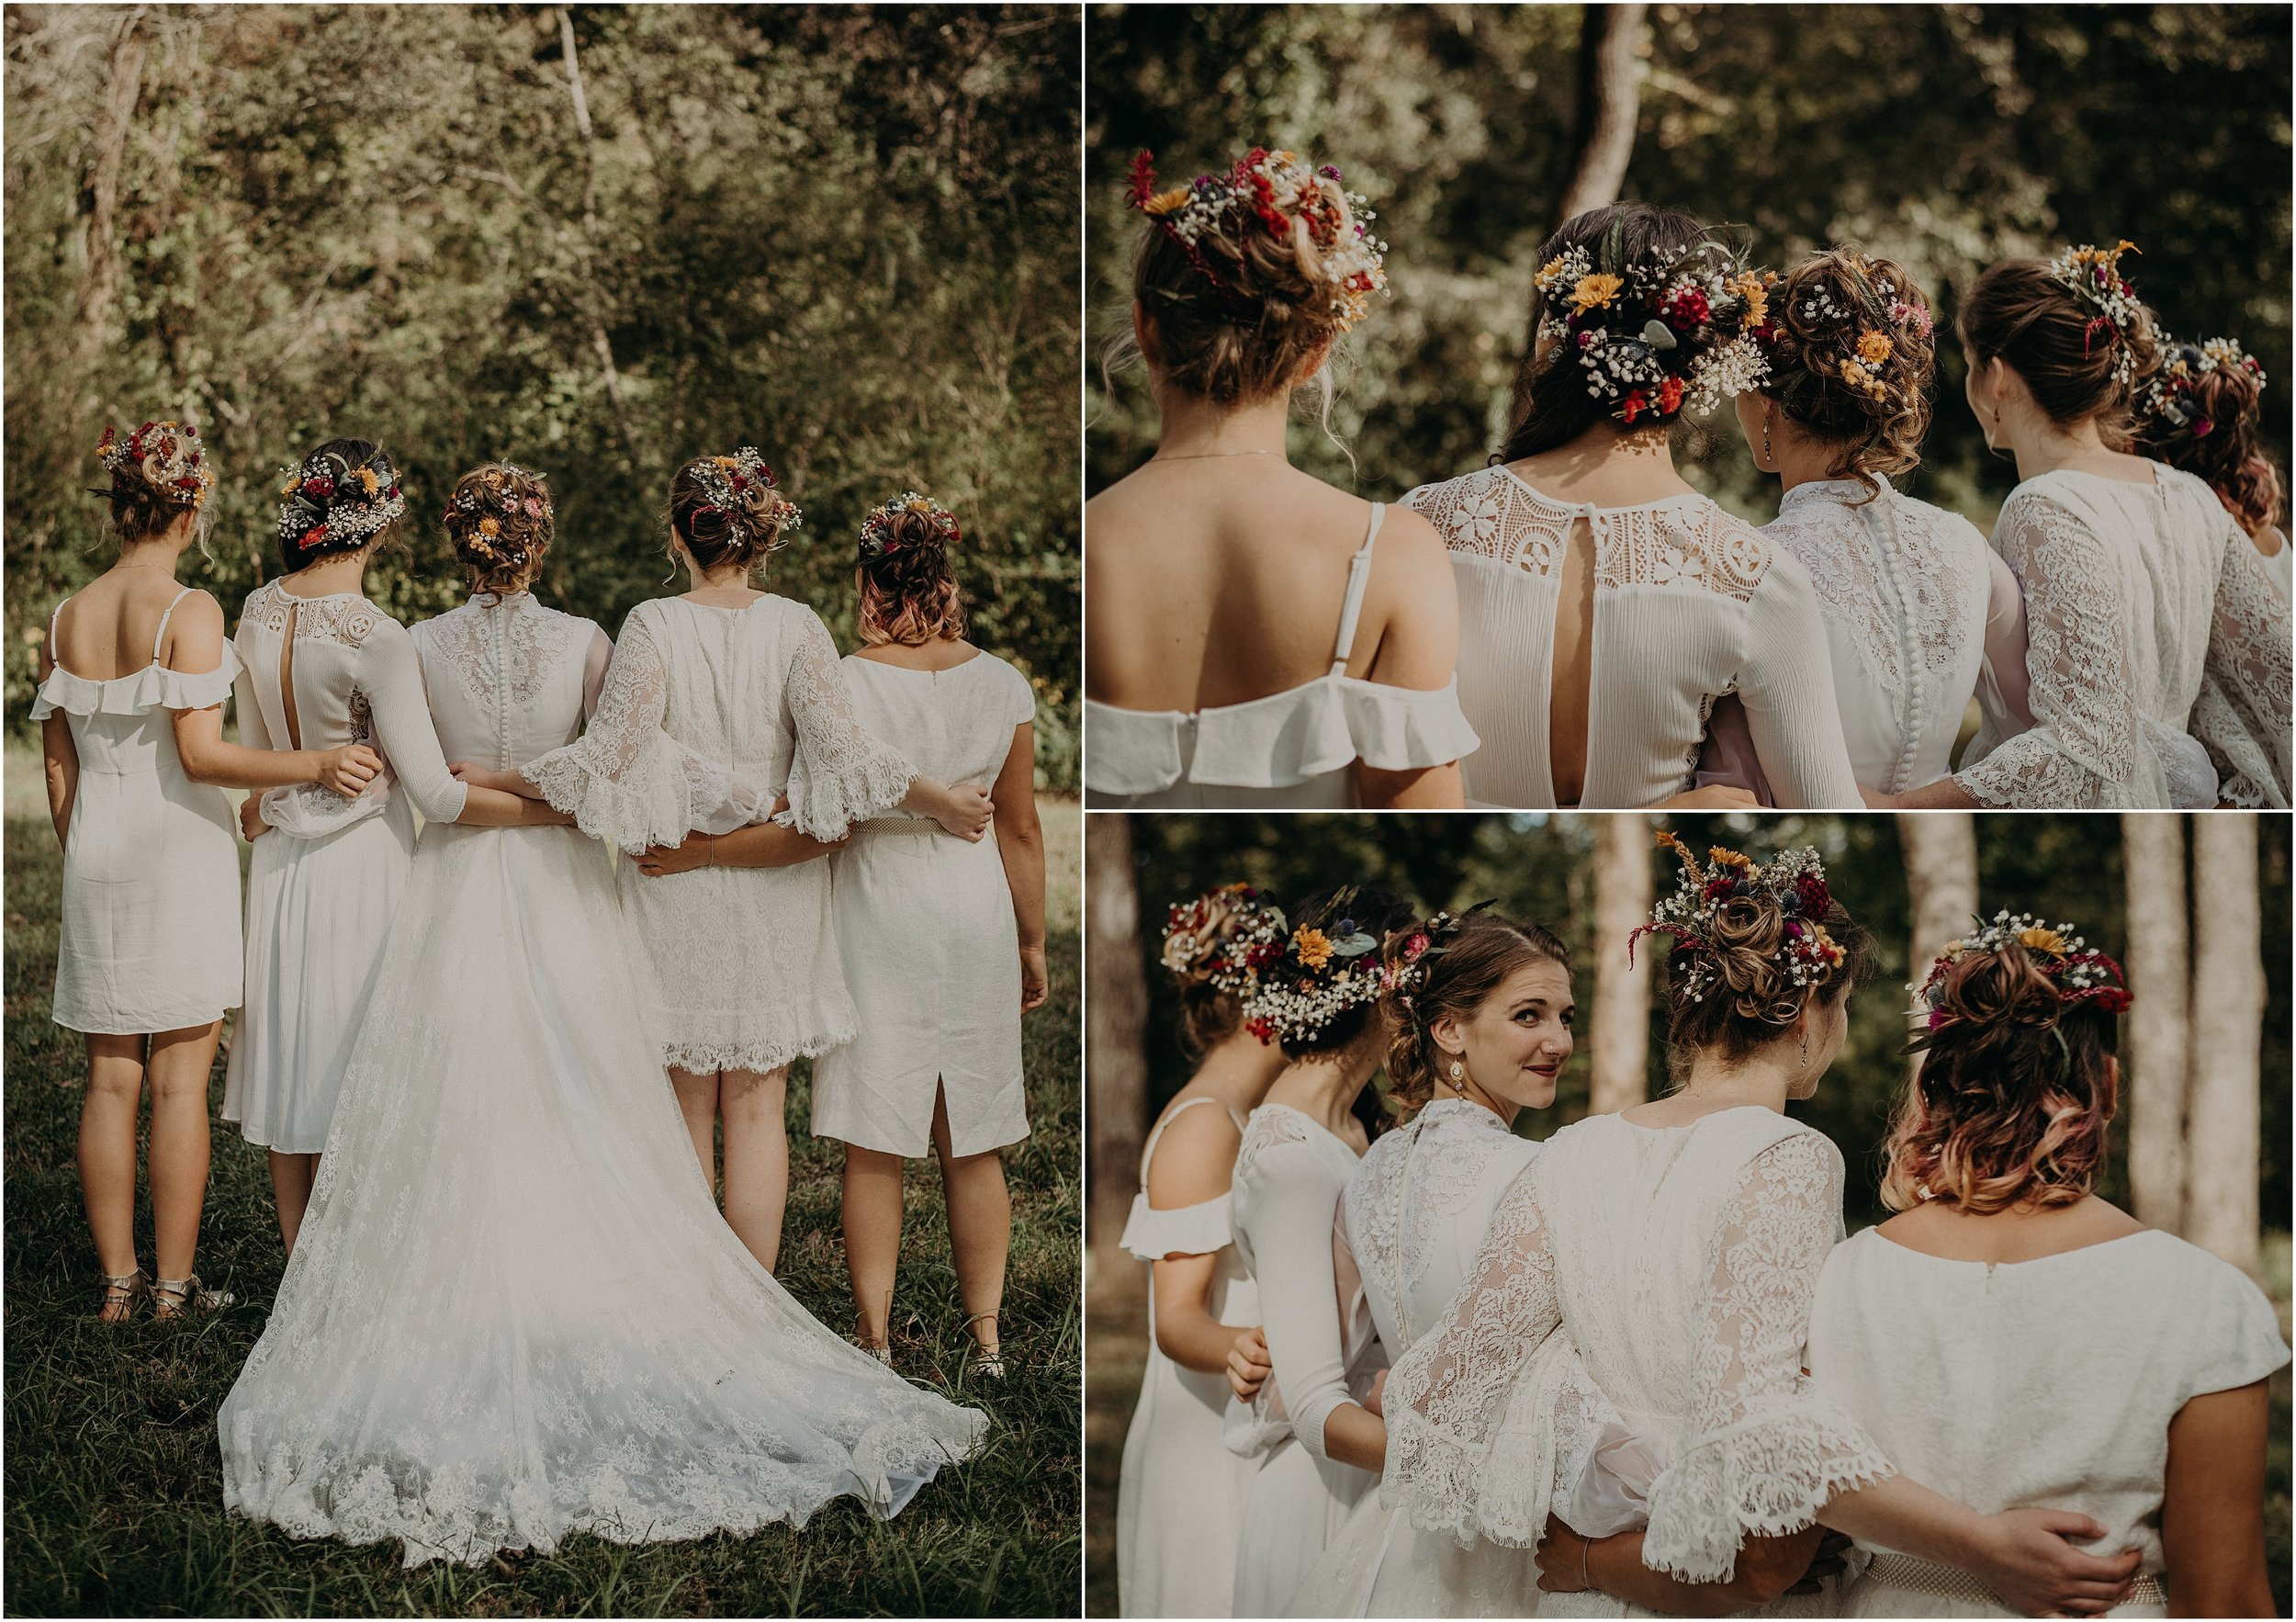 Floral and vintage inspired bridal party wedding style